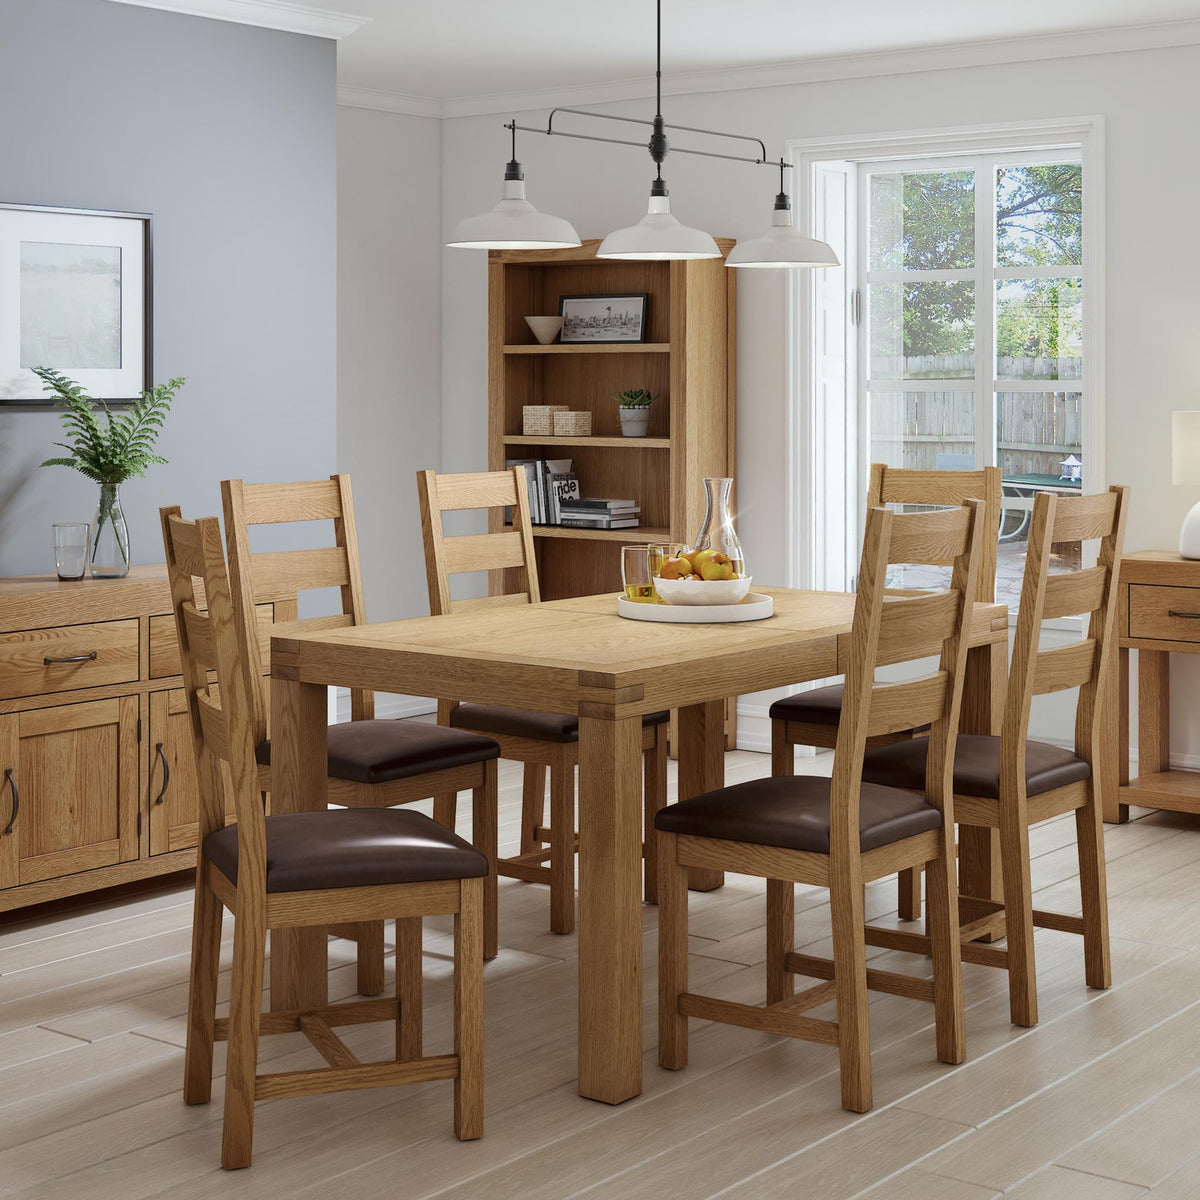 The Abbey Grande Solid Wood Oak Dining Chairs - Lifestyle